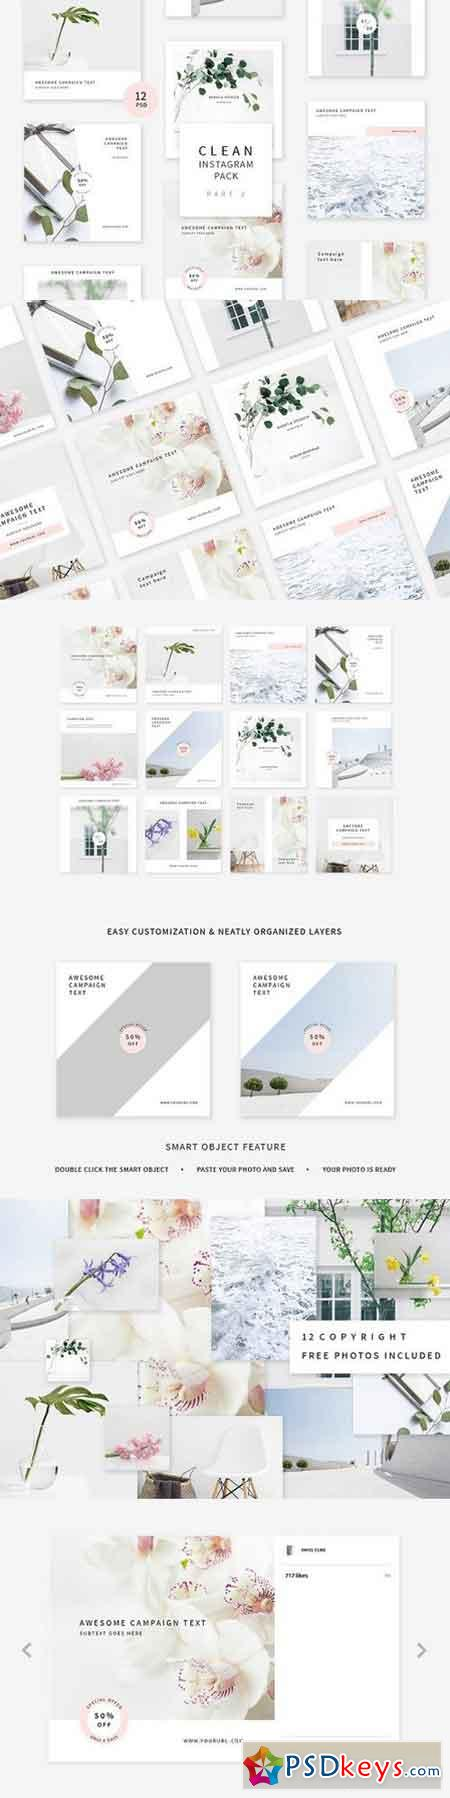 Cleaning Services Bi-Fold Brochure 1697642